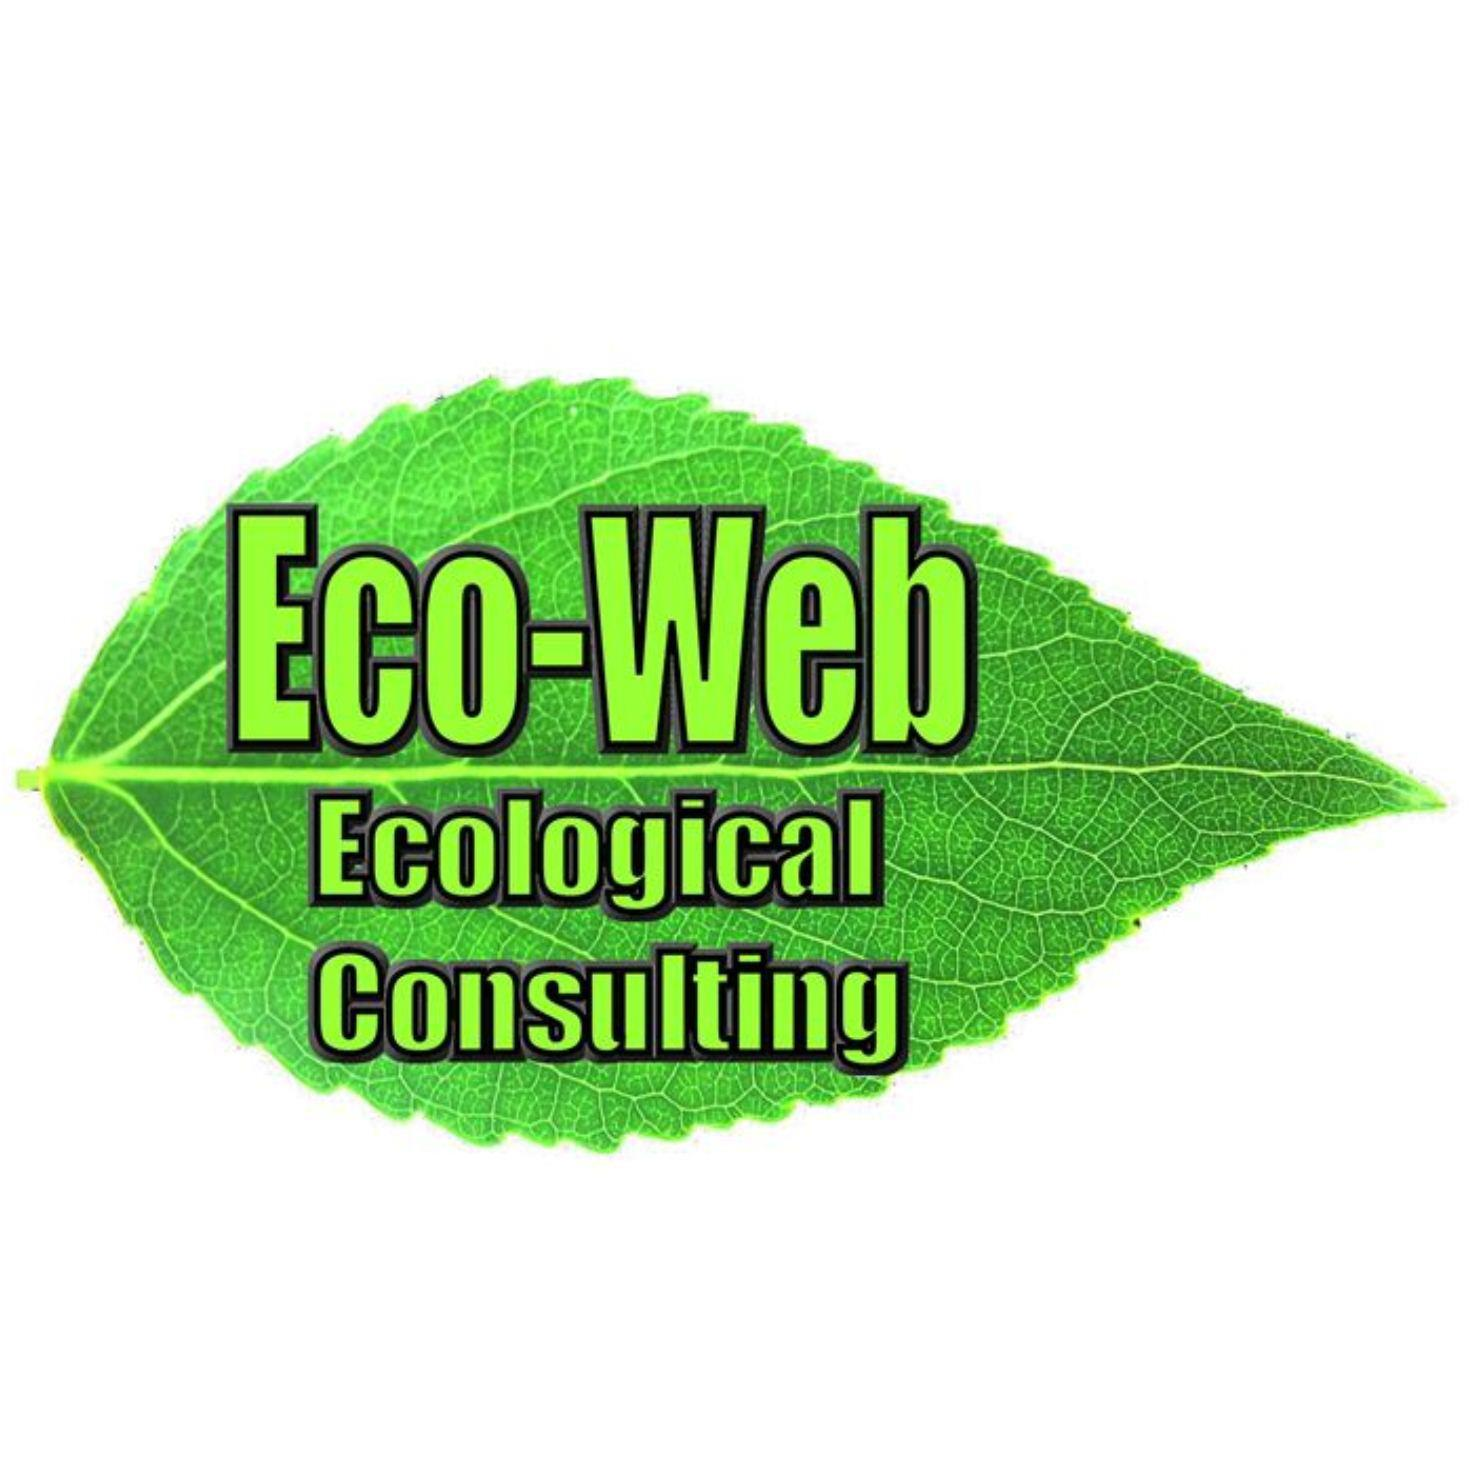 Eco-Web Ecological Consulting Ltd logo